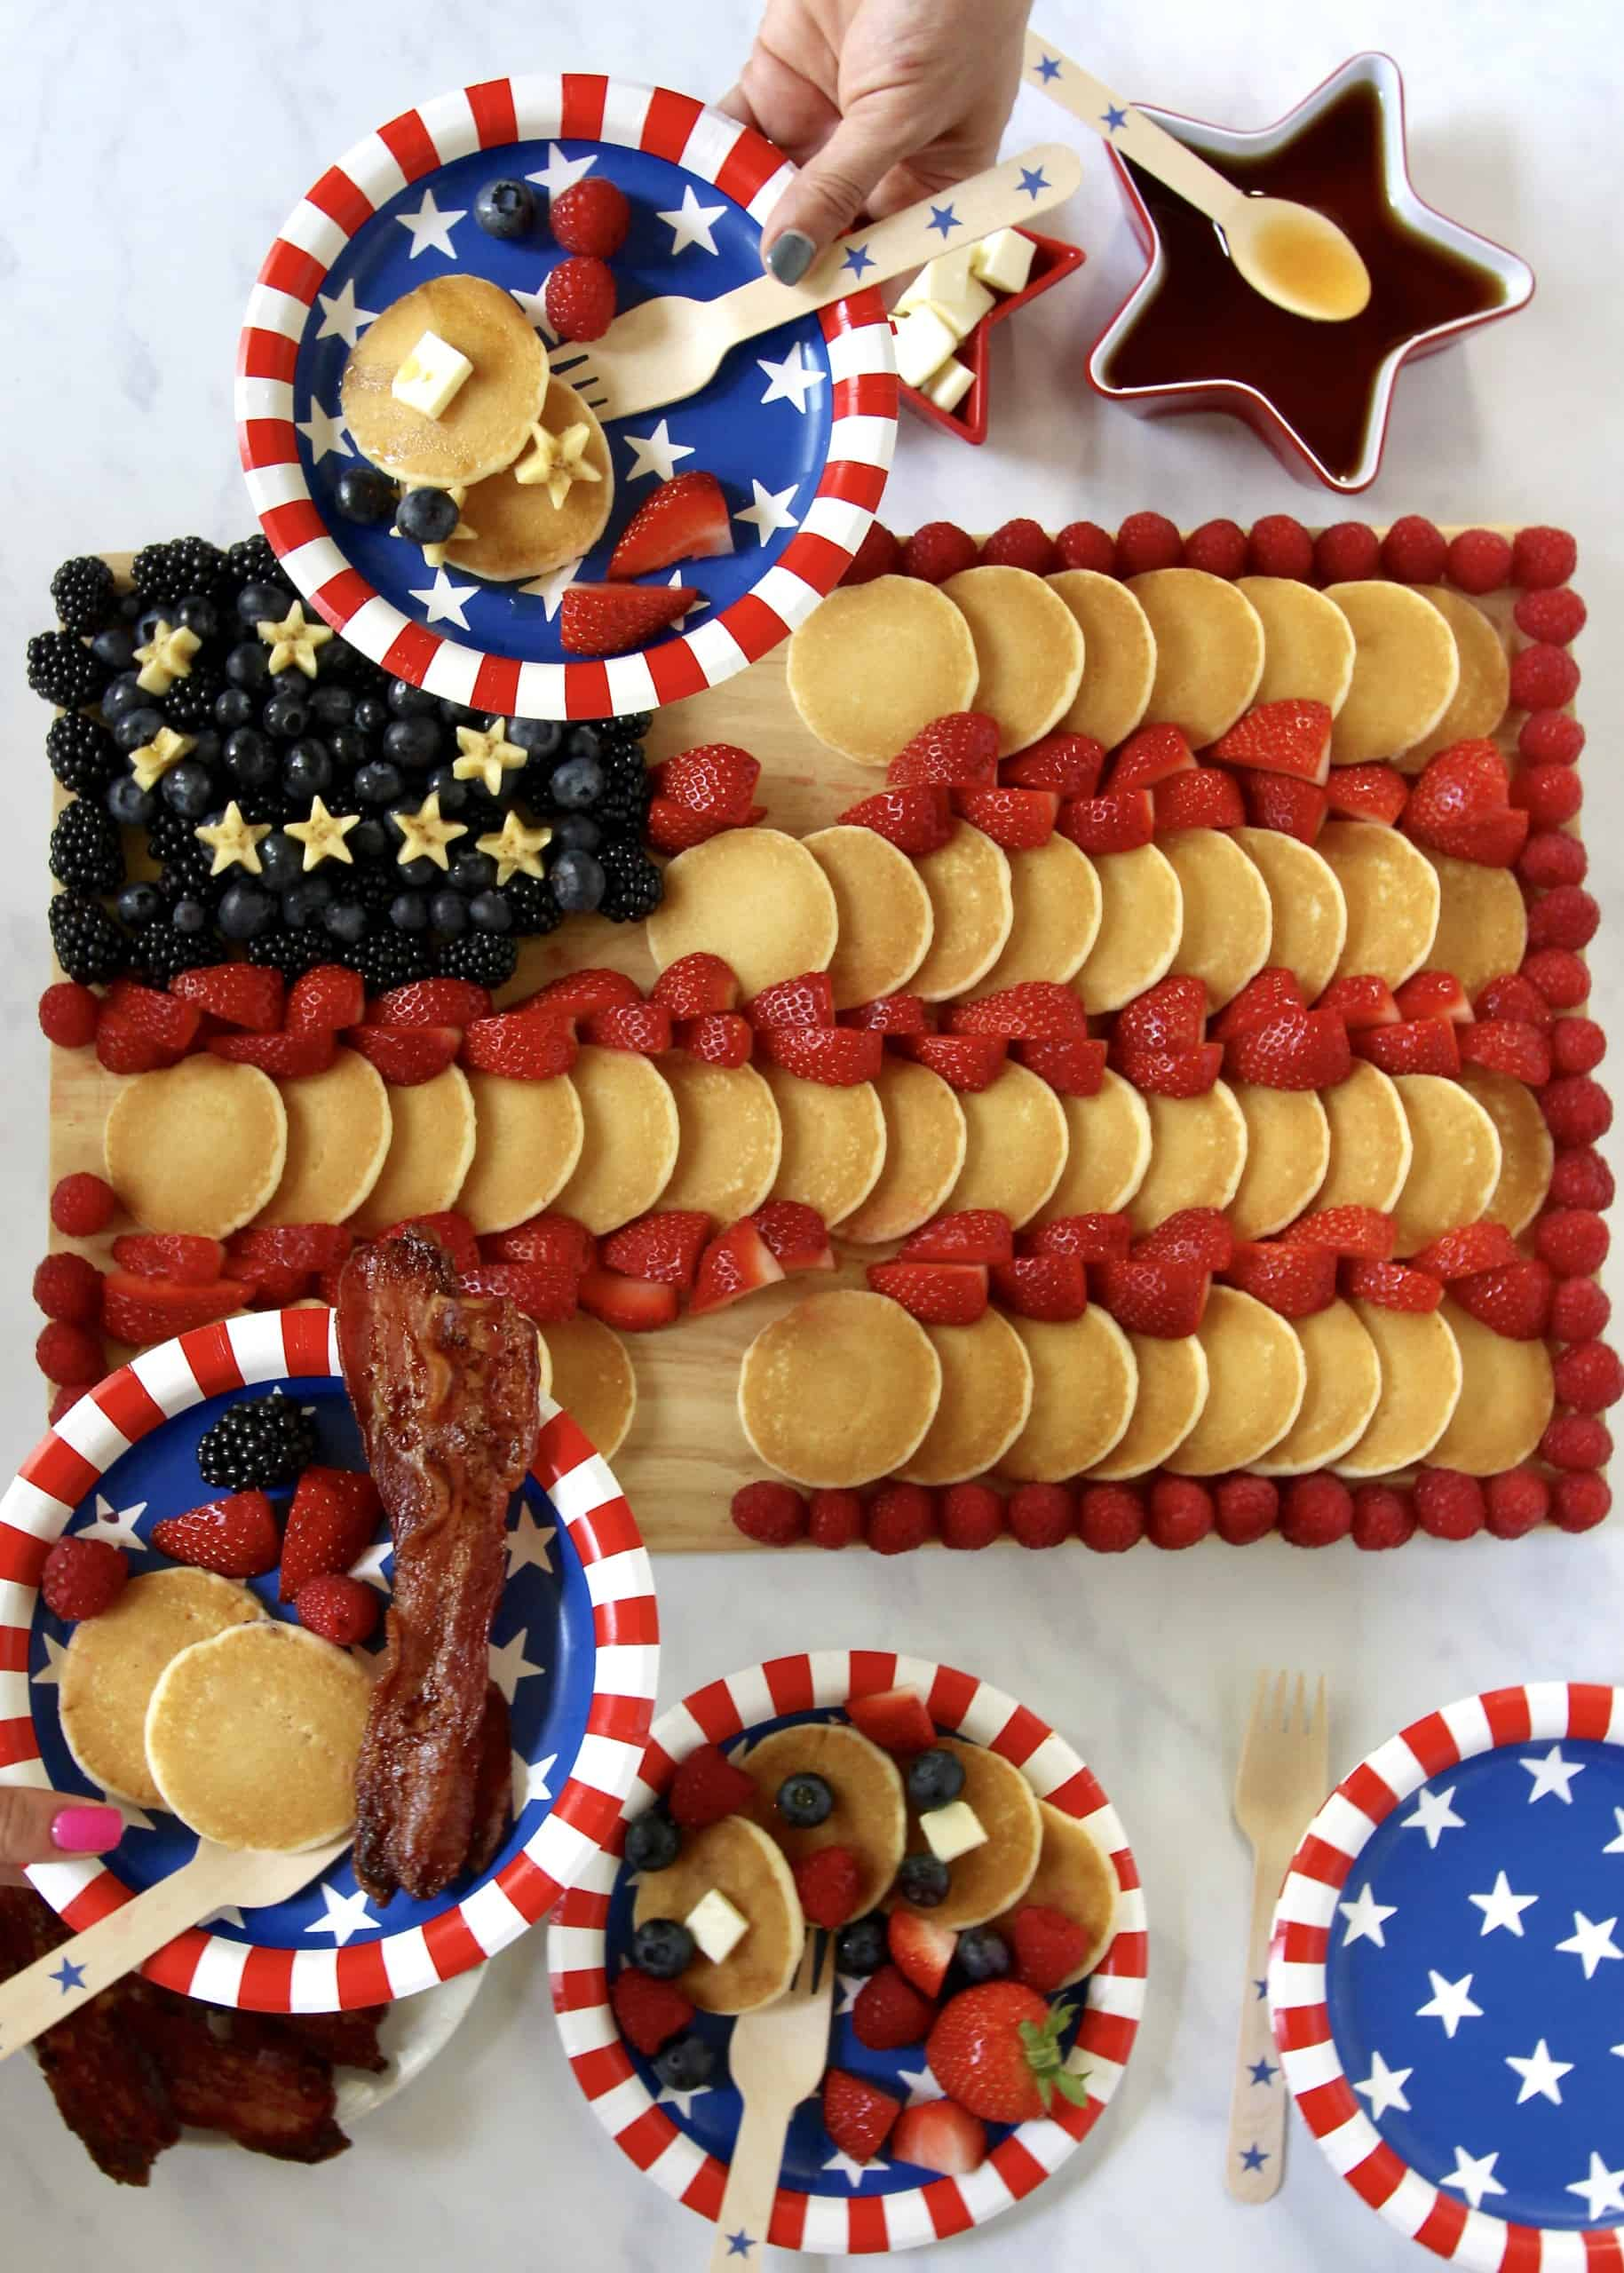 Mini pancakes and fruit arranged to form a festive patriotic, edible flag.